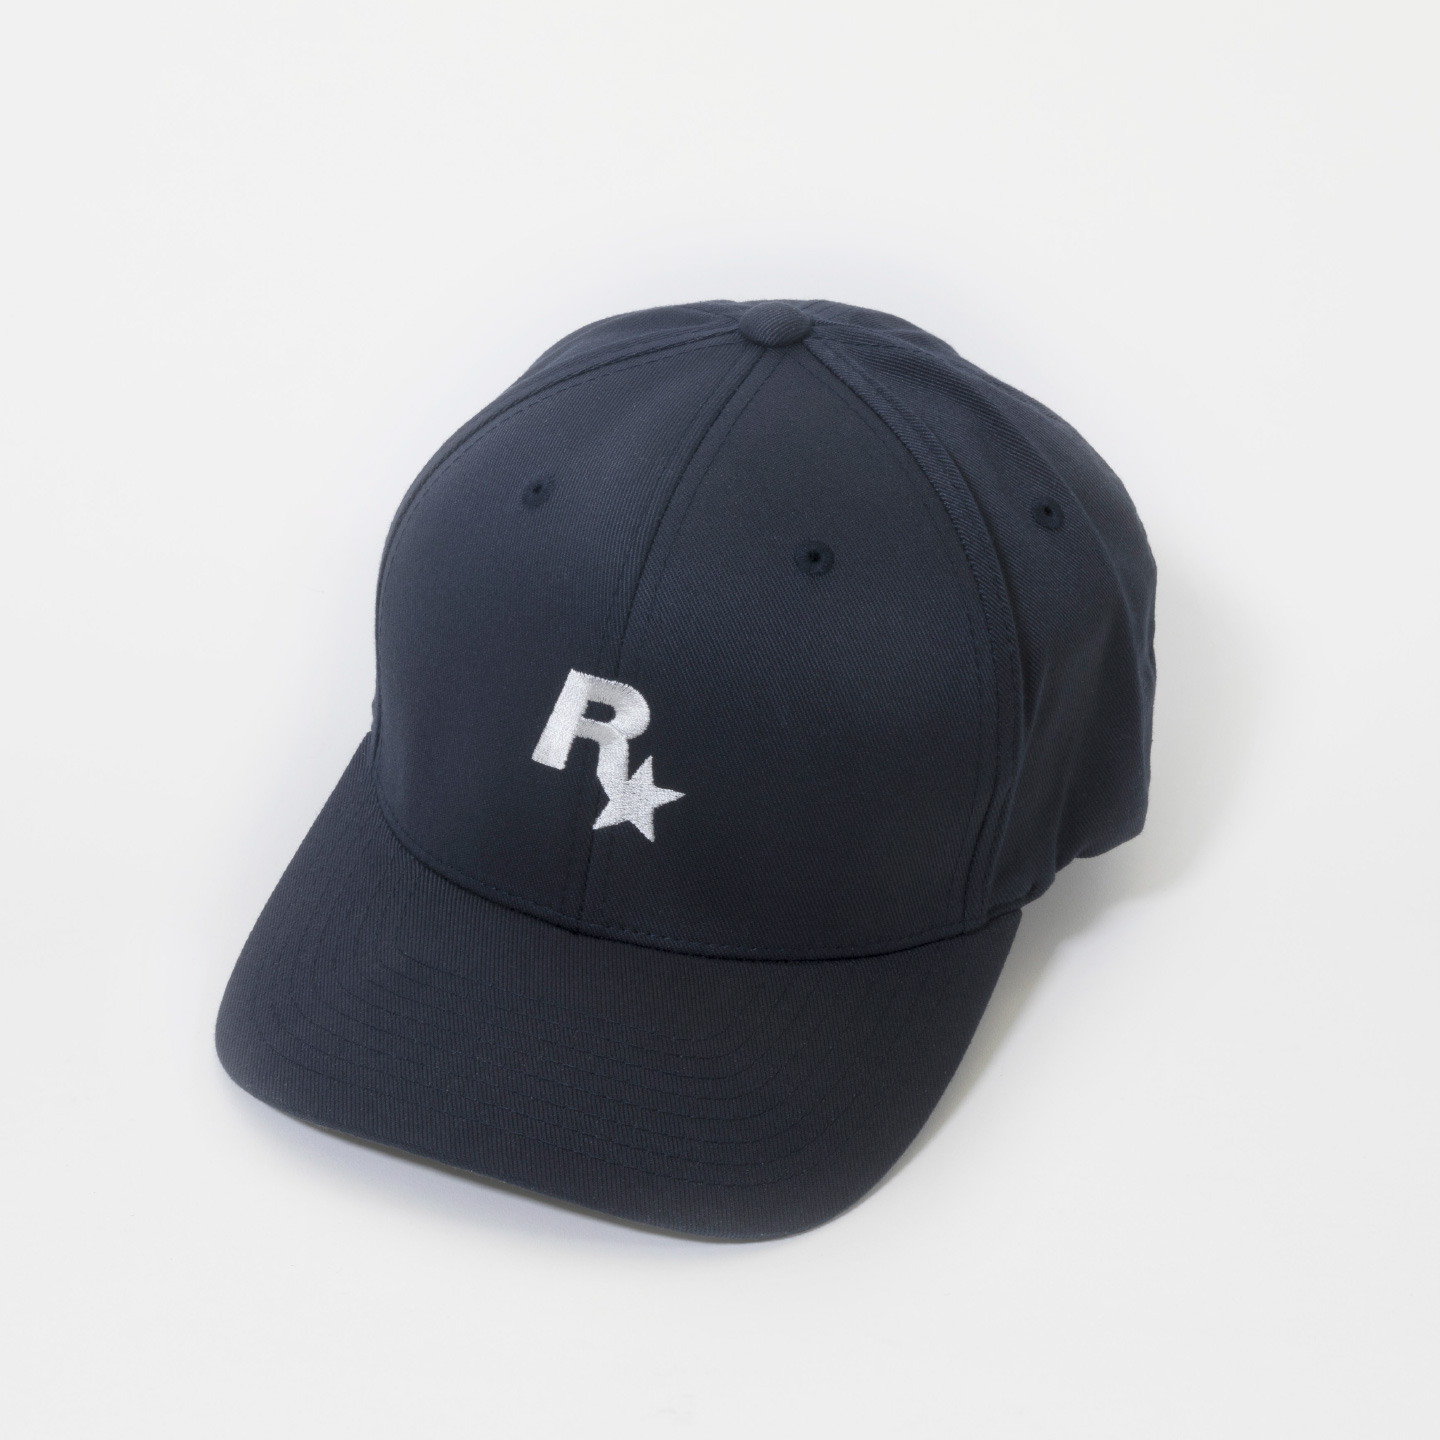 Rockstar Baseball Cap: Navy and White